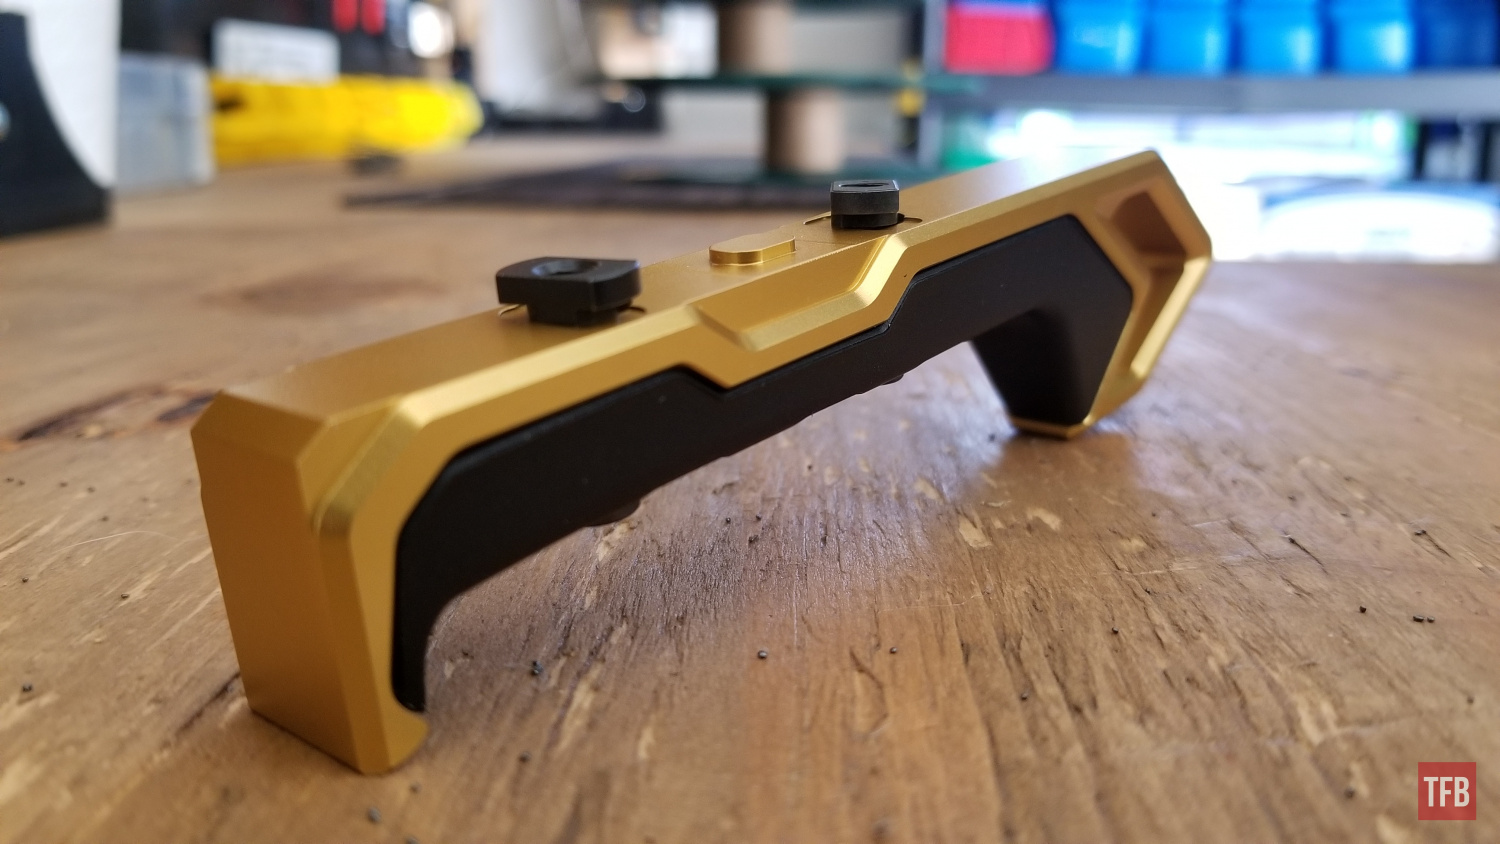 REVIEW: Tyrant Designs Concept One and MOD v2 Grip Upgrades